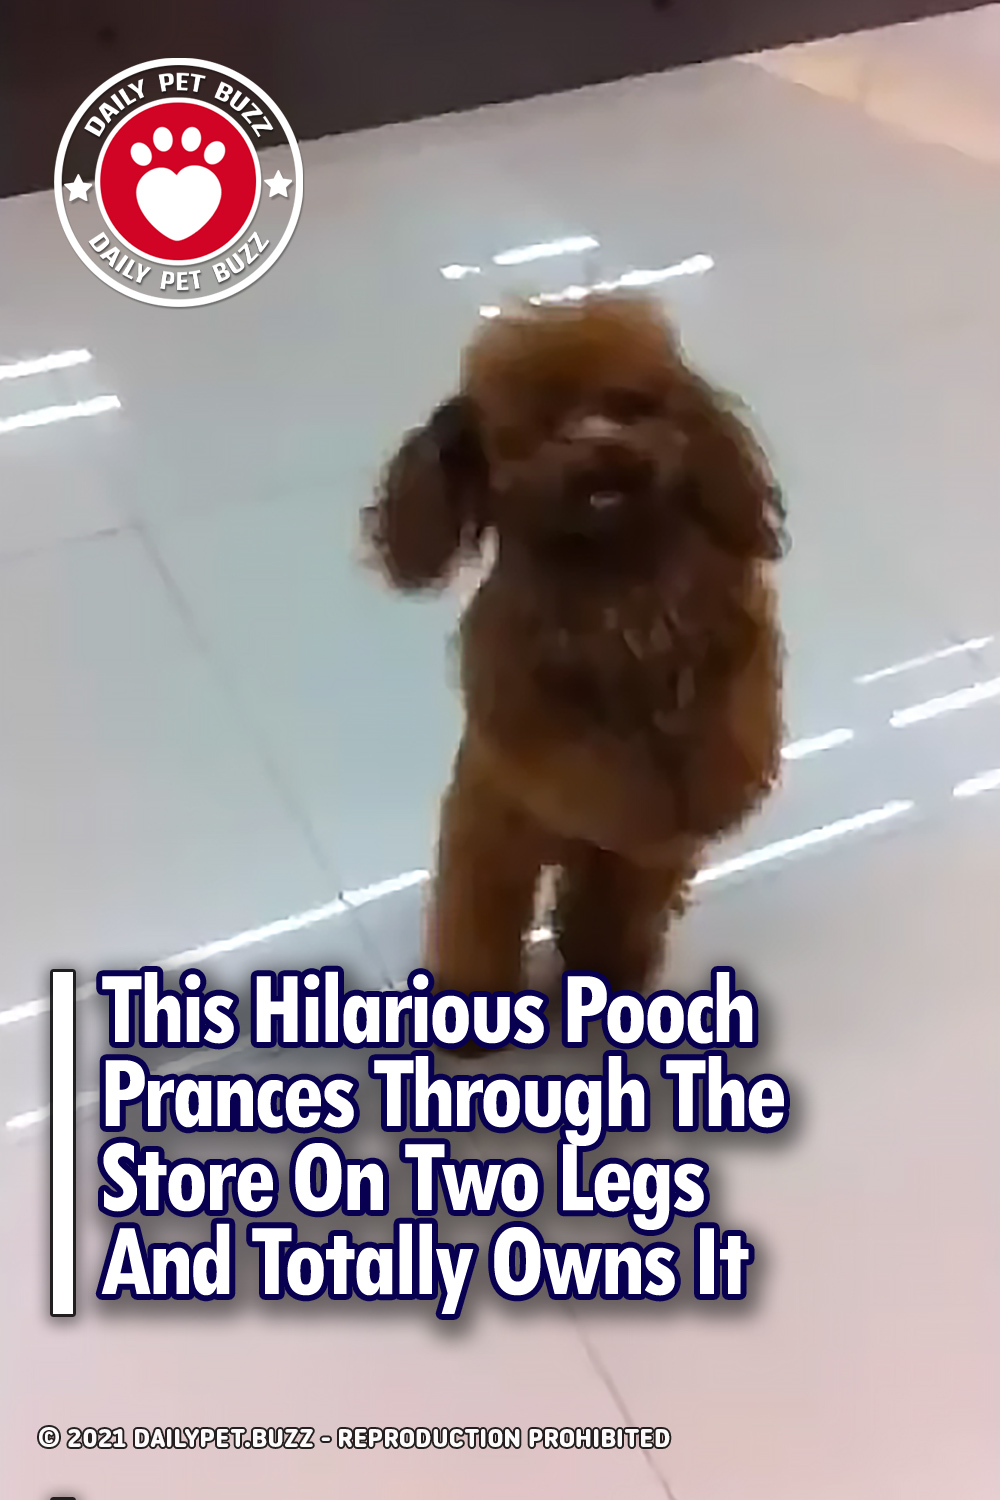 This Hilarious Pooch Prances Through The Store On Two Legs And Totally Owns It